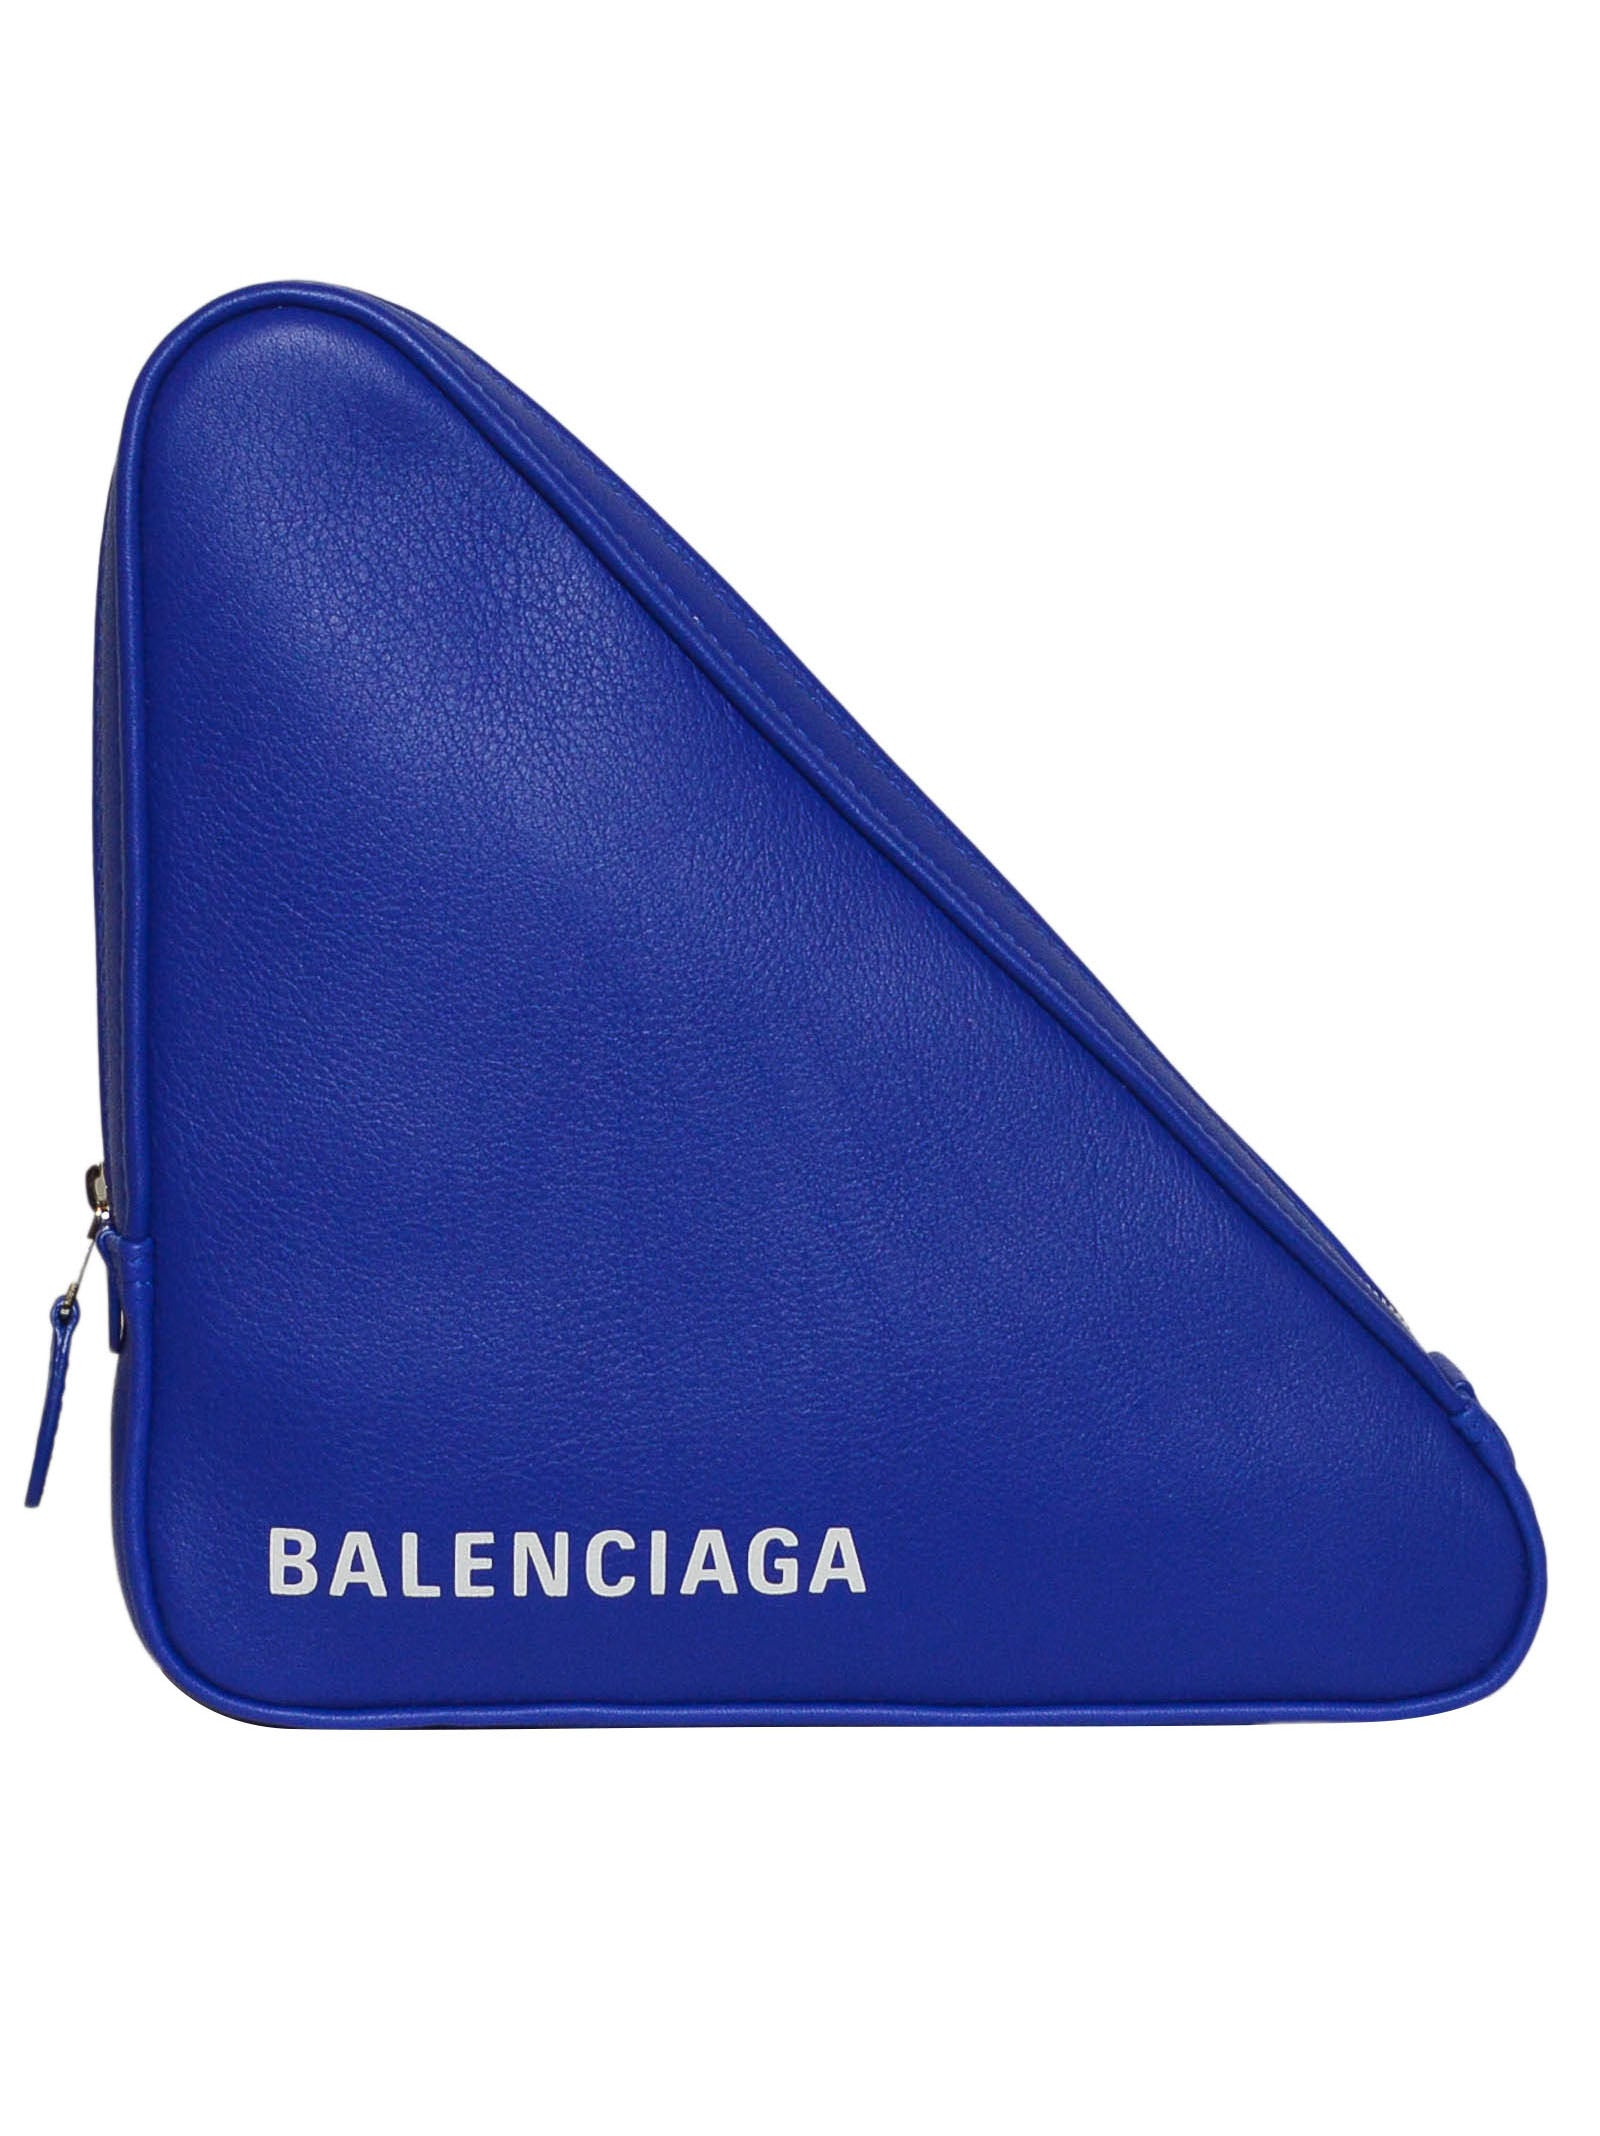 BALENCIAGA TRI TRIANGLE CLUTCH BAG